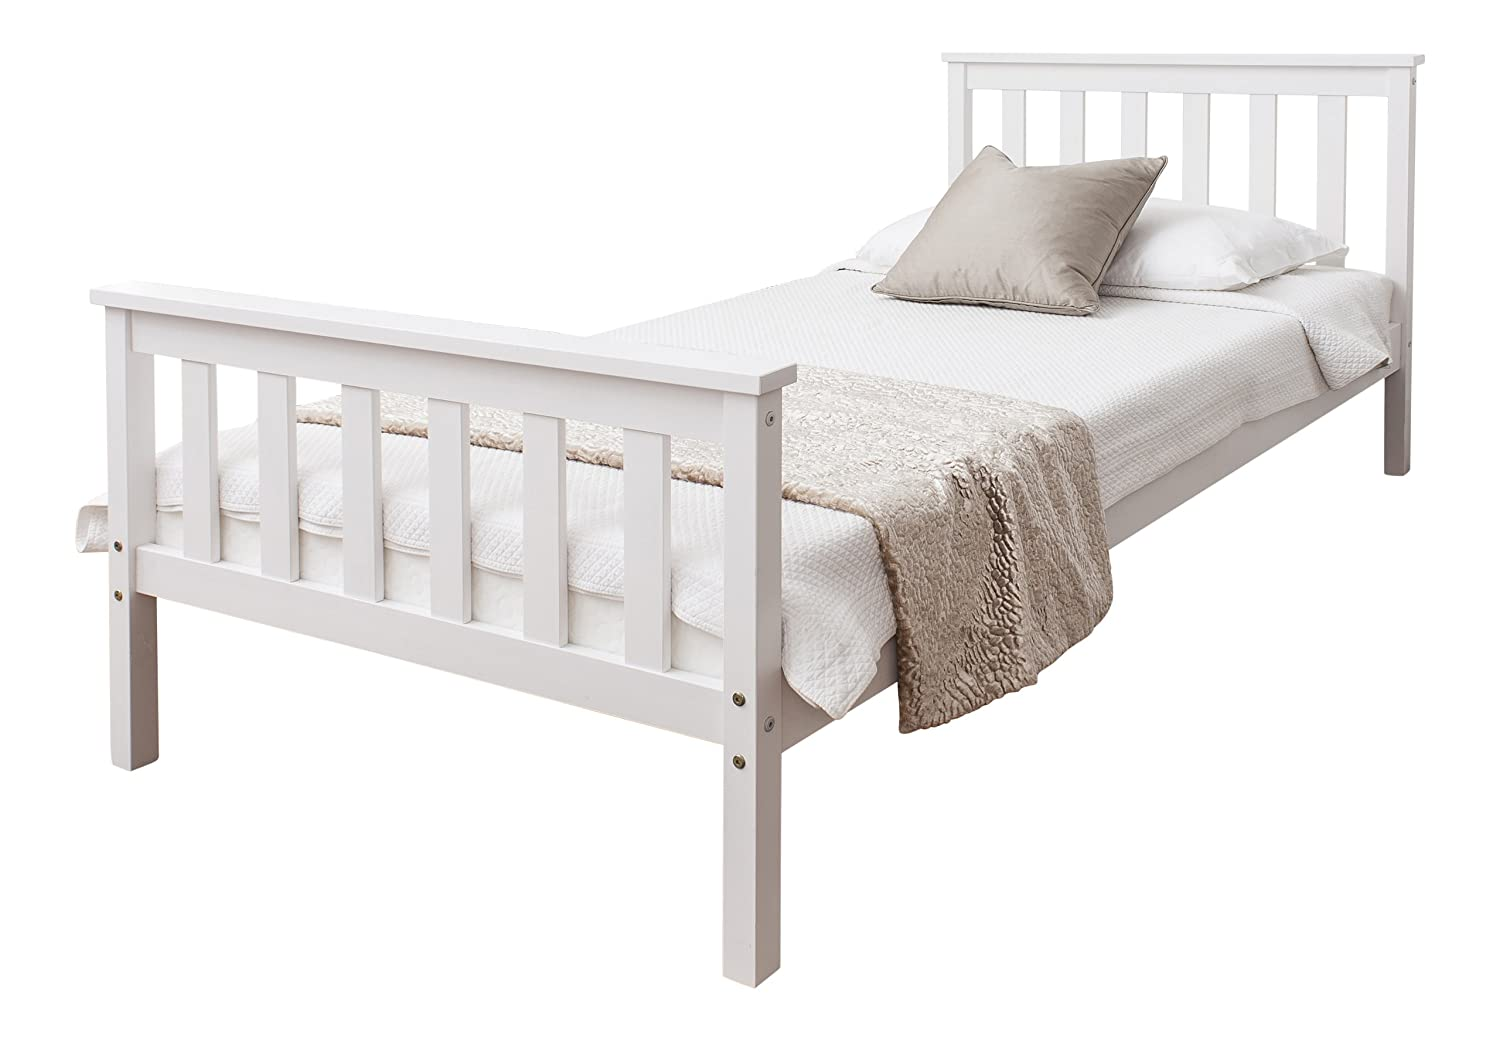 beds single bed frame fabric h buy remaining s in grey m greykingsinglechesterbed wooden chester windsor king